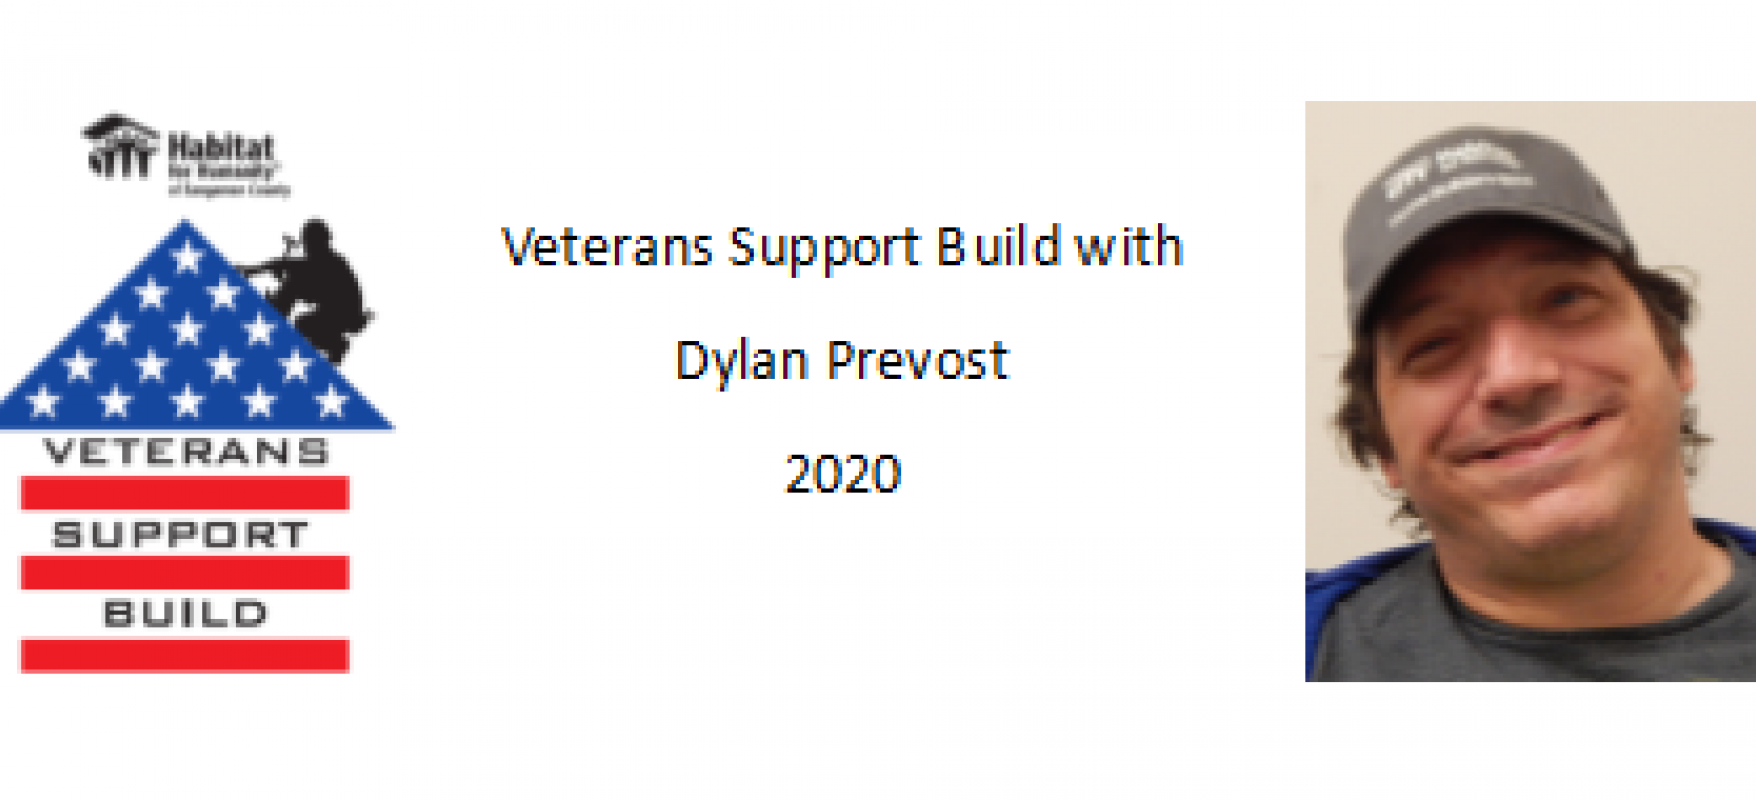 Veterans Support Build